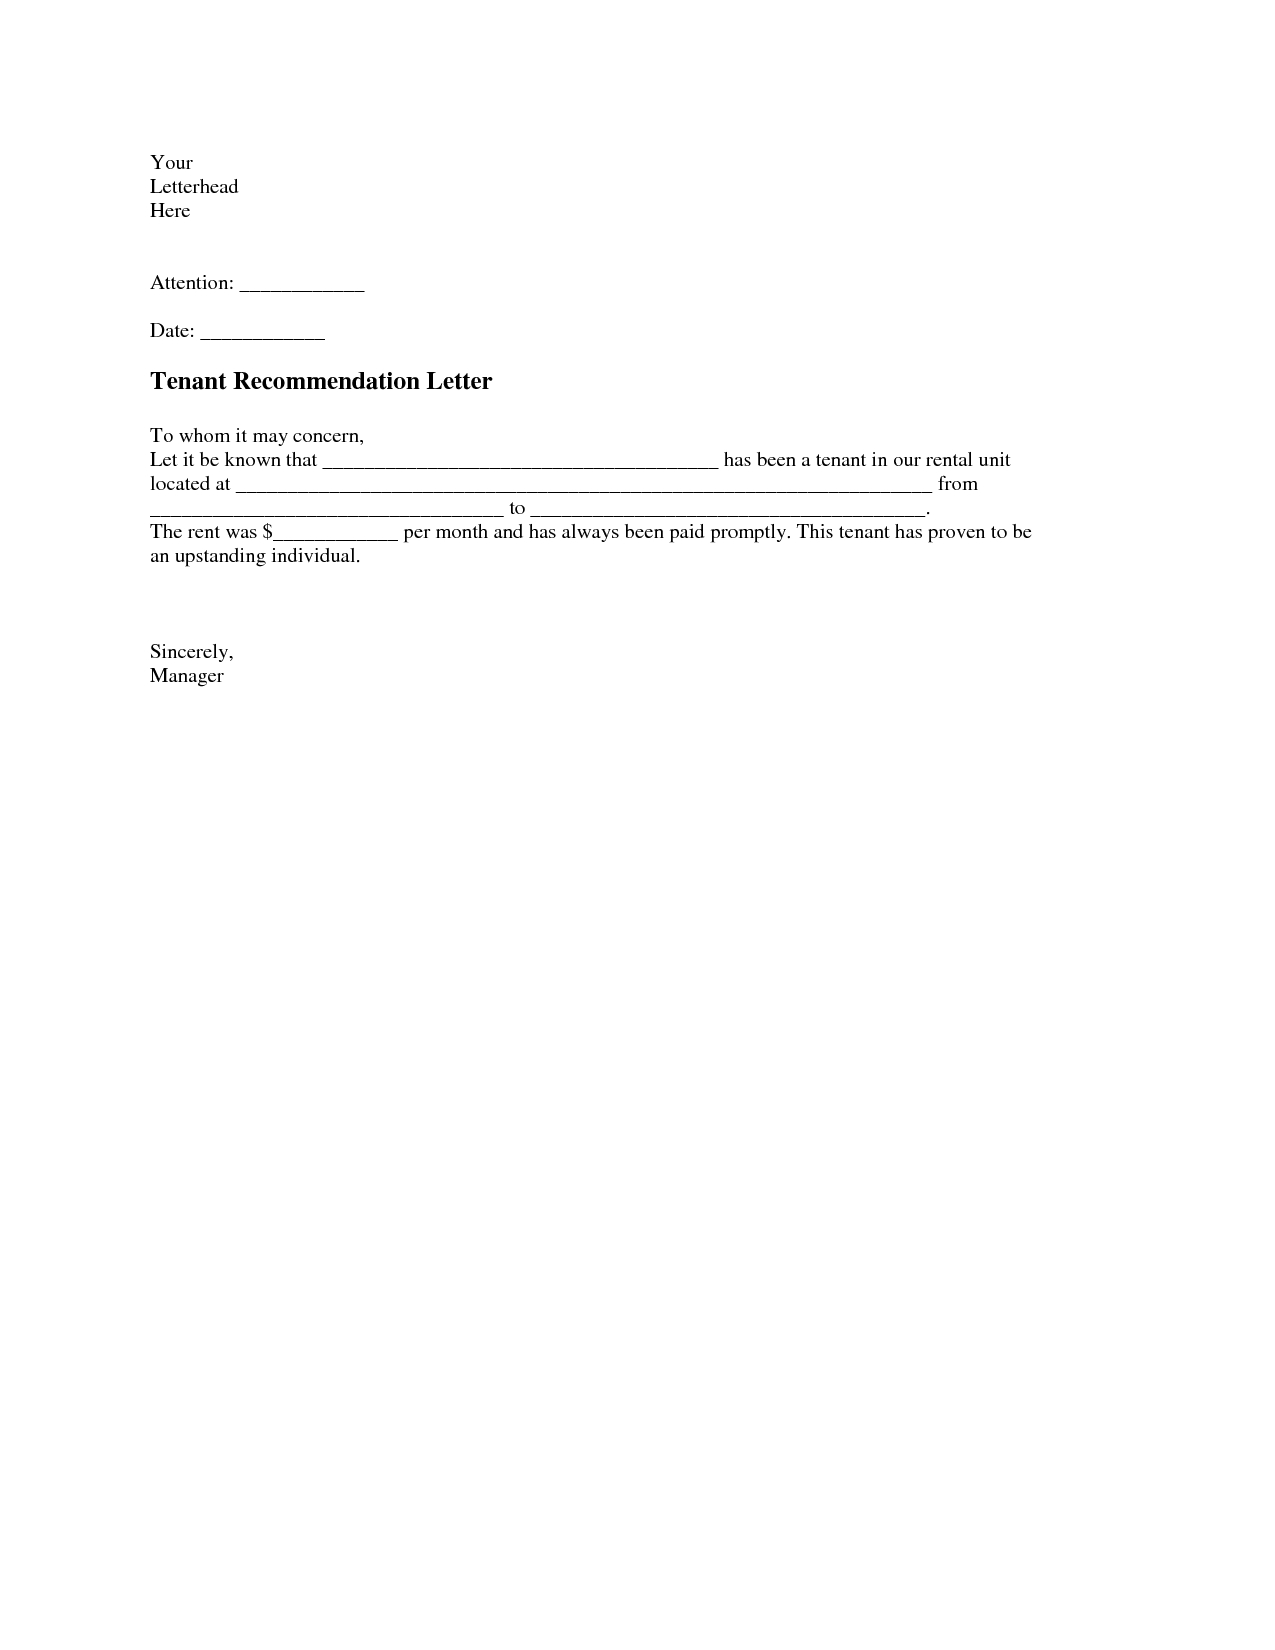 landlord reference letter template example-Tenant Re mendation Letter A tenant re mendation letter is usually required by a serious landlord from previous landlords to ensure that the potential 10-t